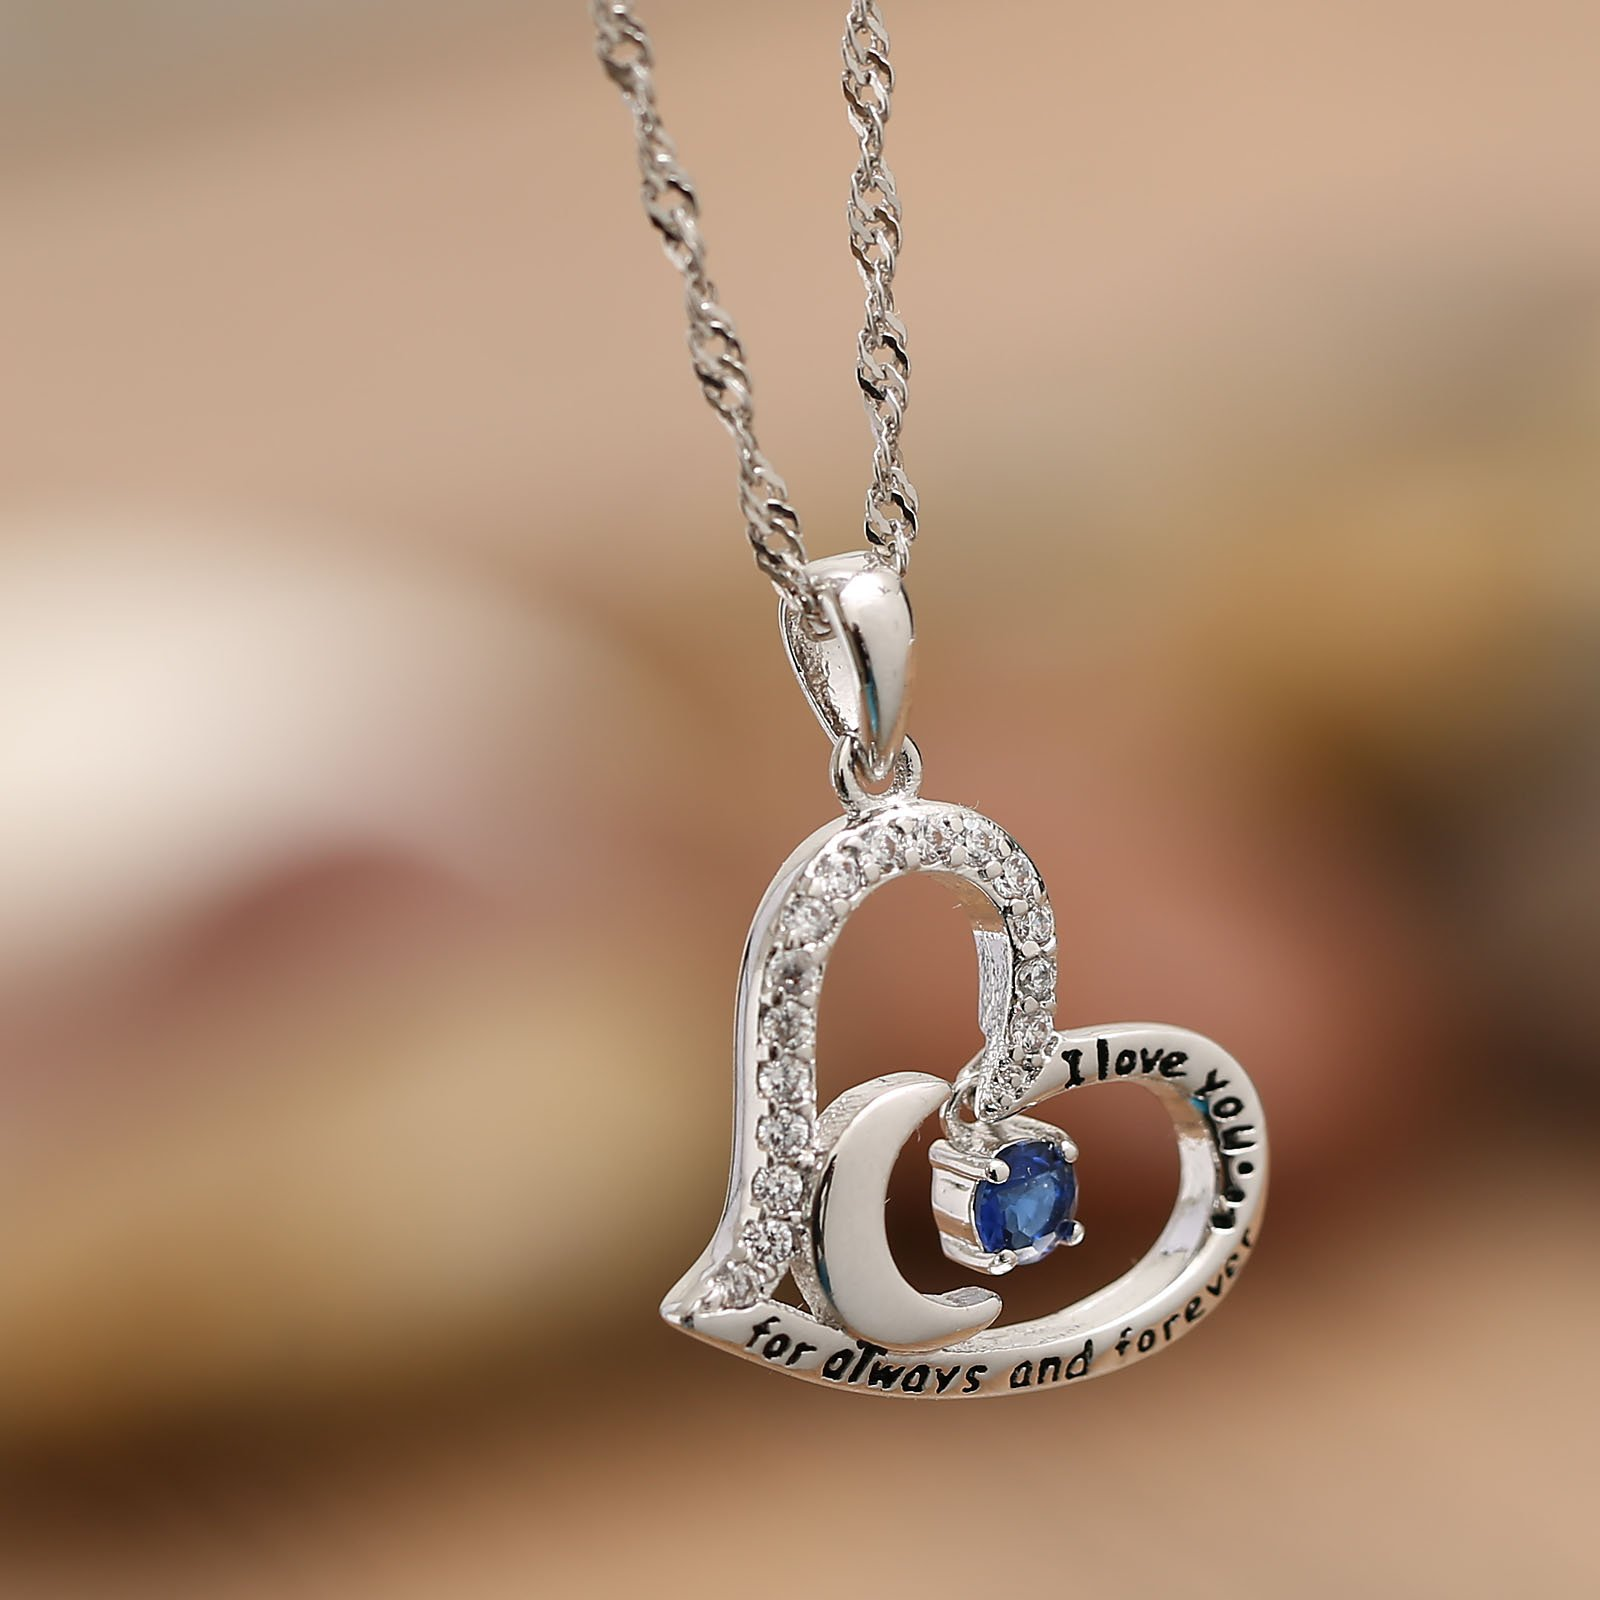 Valentine's Day Gift Fine Jewelry Gift Sterling Silver Heart Pendant Necklace Birthday Necklace I Love You For Always and Forever Dancing Birthstone (09-September-Sapphire) by Anna Crystal Jewelry (Image #4)